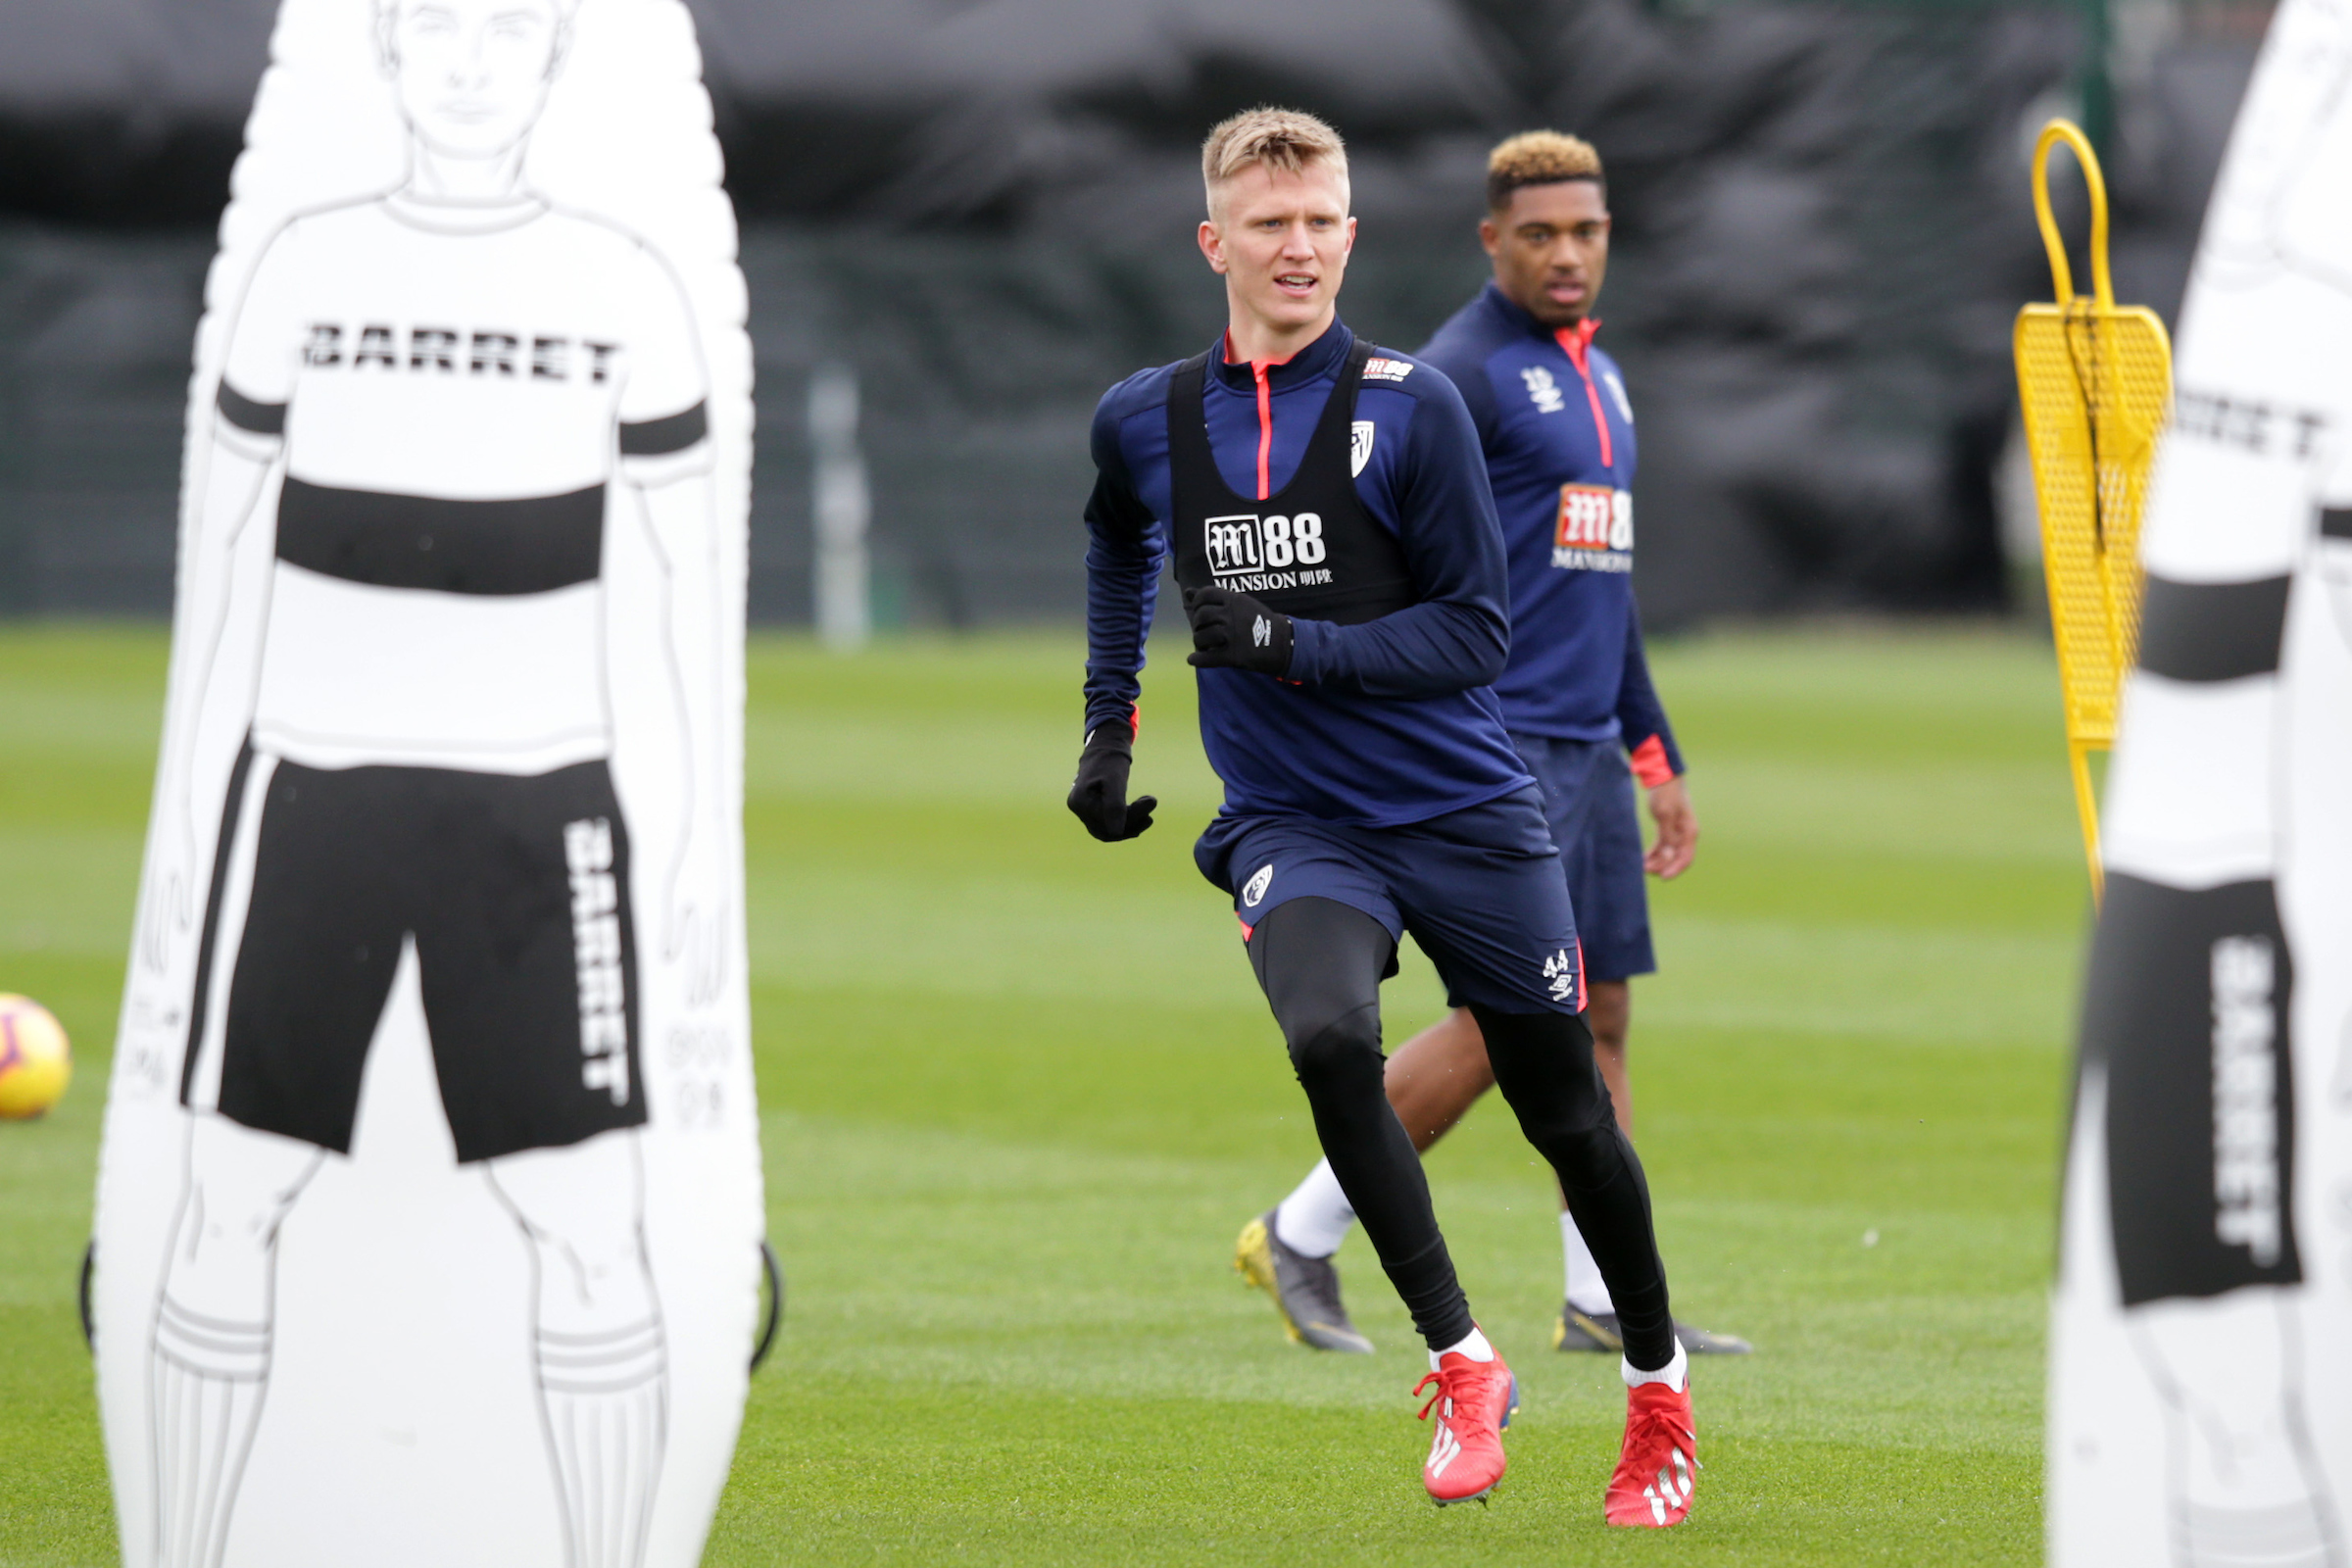 'I had my mind set on being a professional footballer' – AFC Bournemouth's Sam Surridge proud to graduate from club's academy